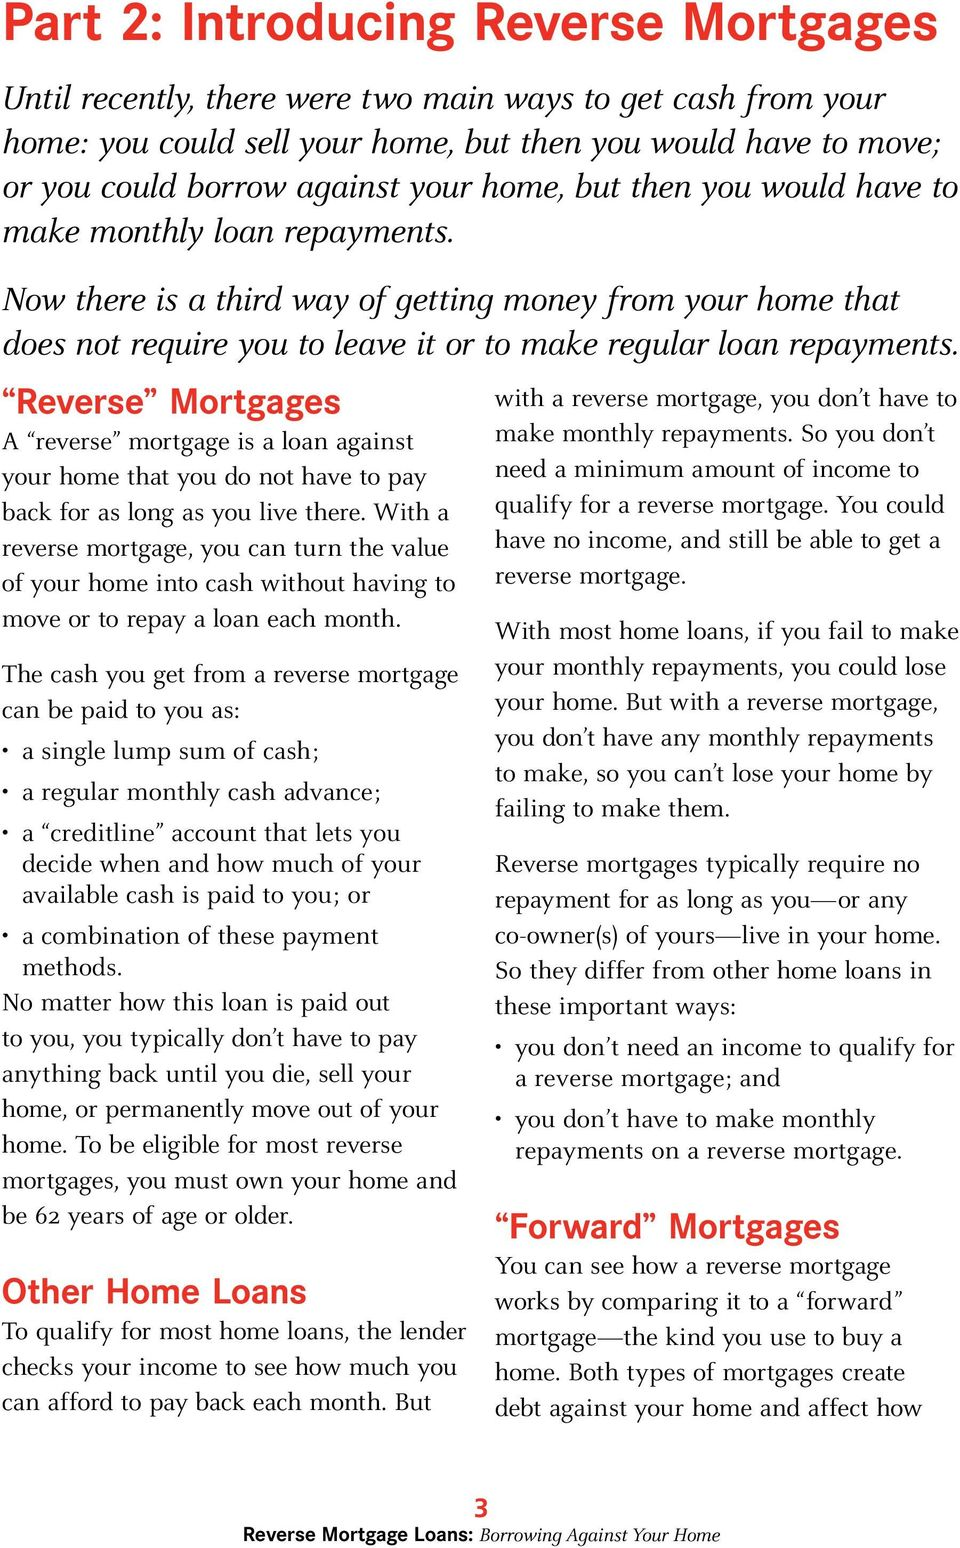 Reverse Mortgages A reverse mortgage is a loan against your home that you do not have to pay back for as long as you live there.